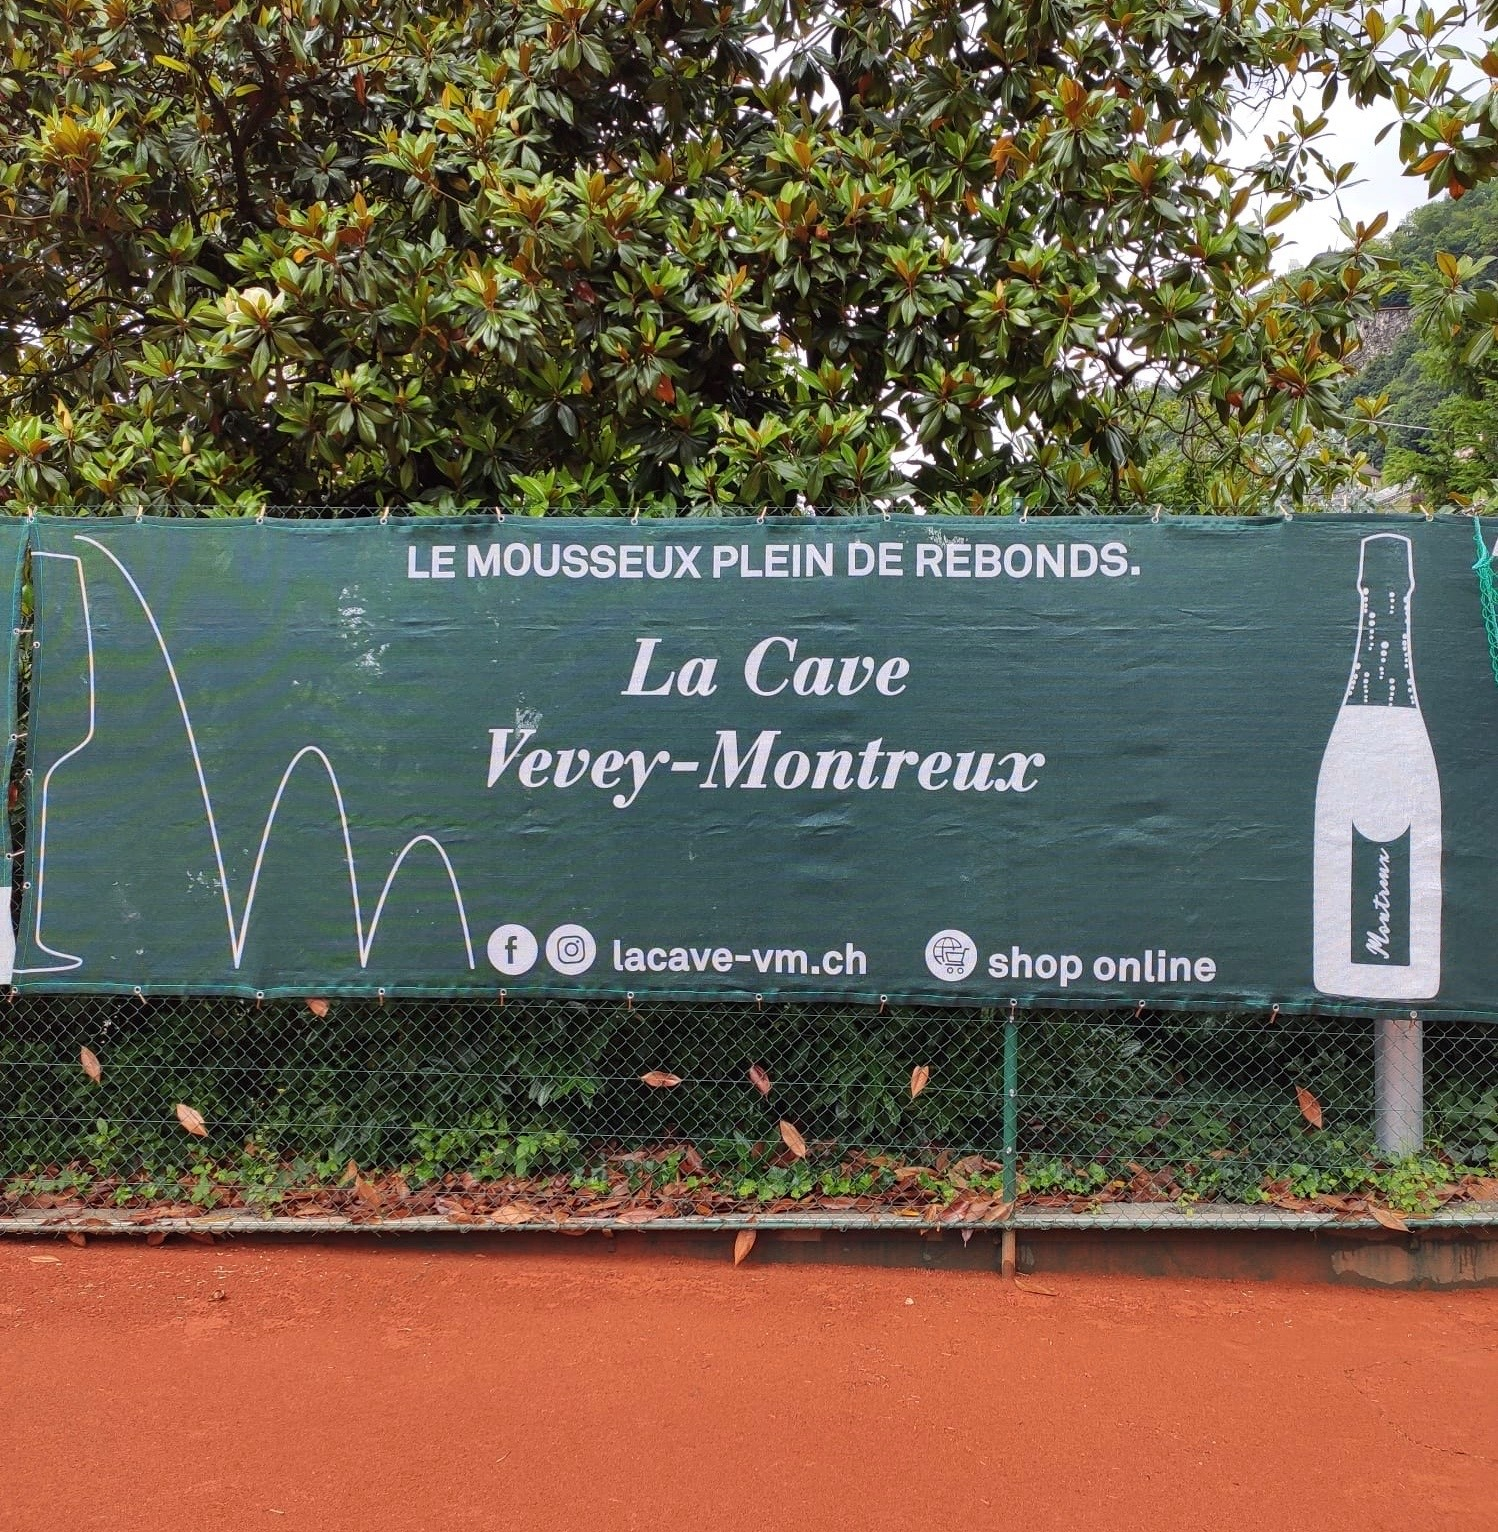 Tennis Club Territet